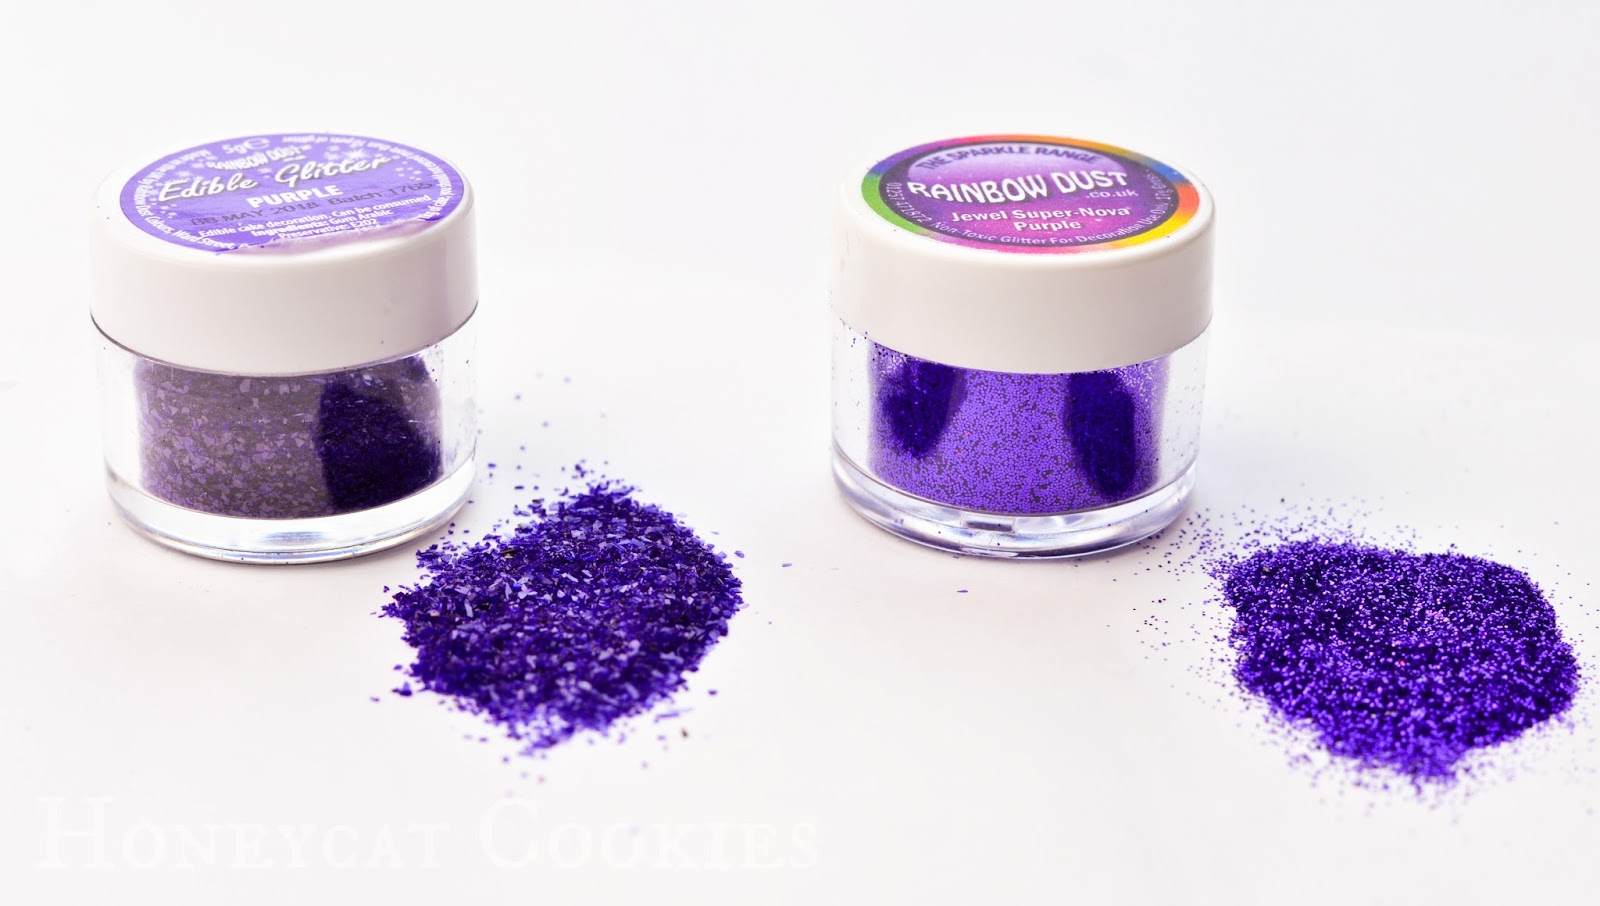 Rainbow Dust 'Edible Glitter' and 'Non Toxic' glitter side by side for comparison. Photo by Honeycat Cookies.